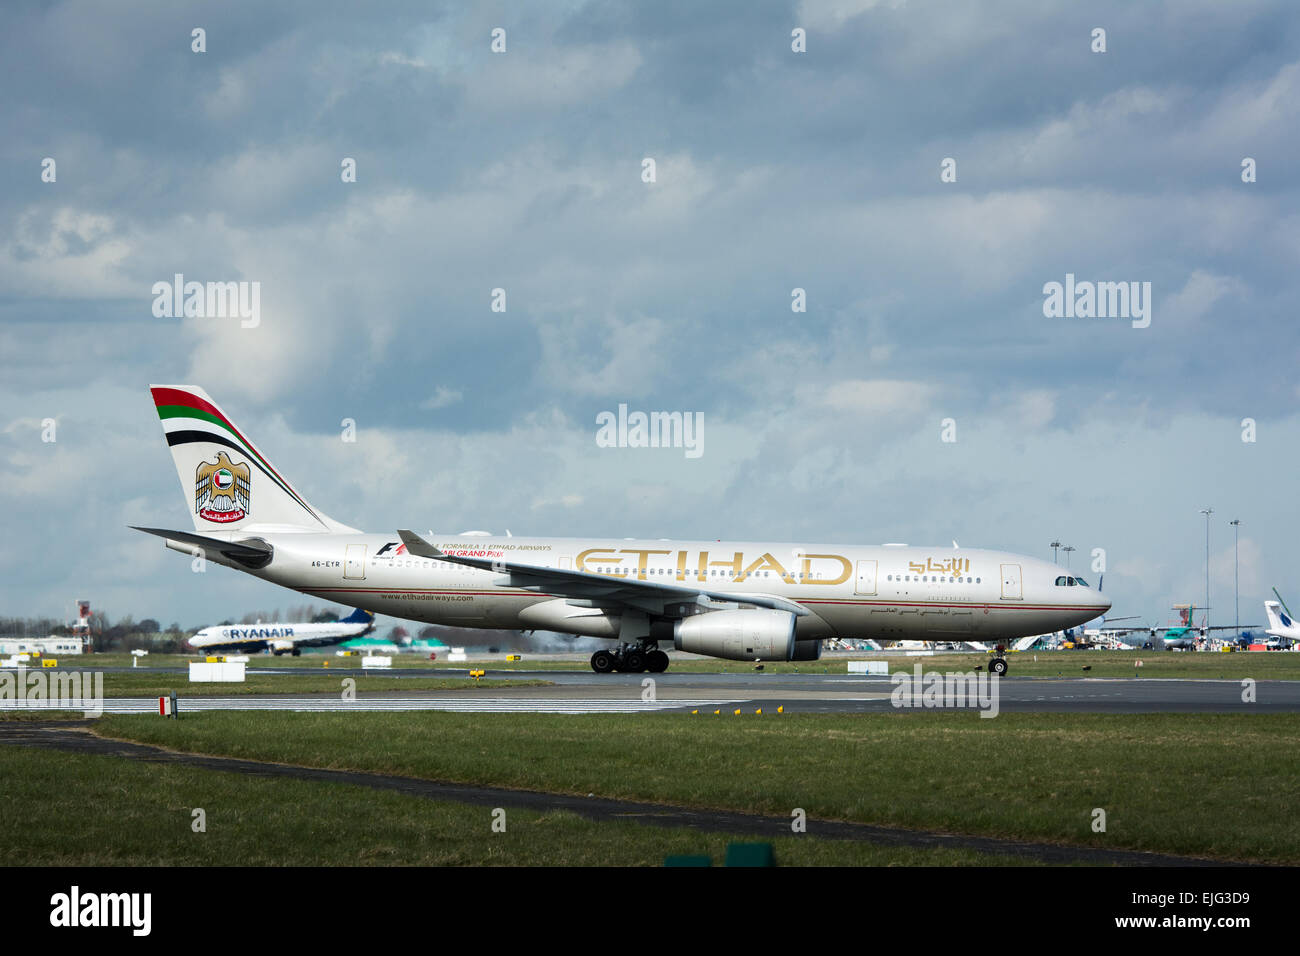 Etihad Airbus 330 commercial plane on runway at Dublin airport Ireland - Stock Image